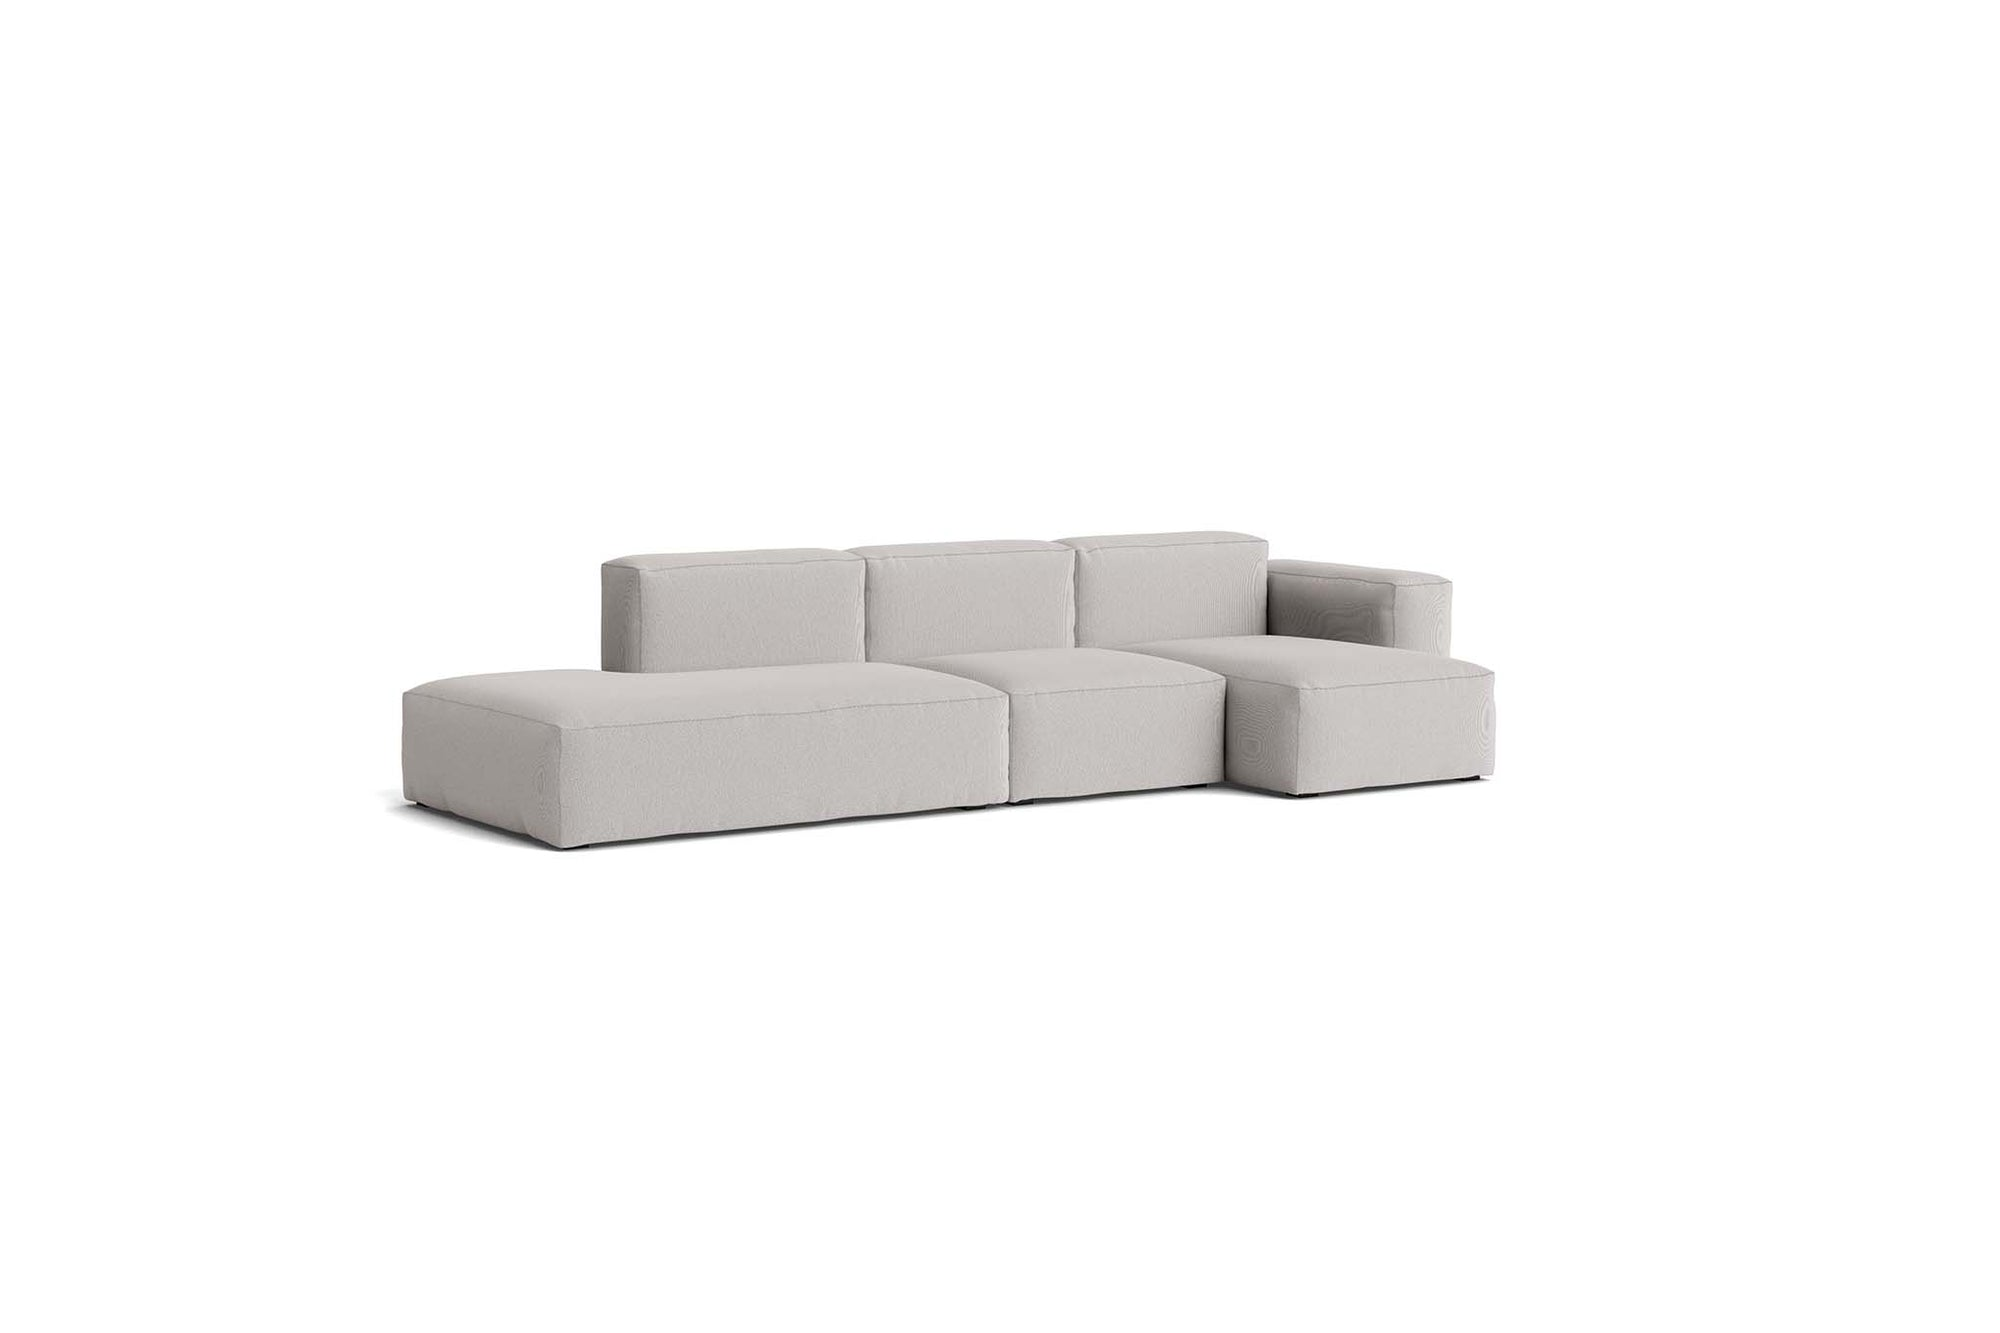 HAY - Mags Soft Low Sofa - 3 Seater - Combination 3 with Right Low Armrest